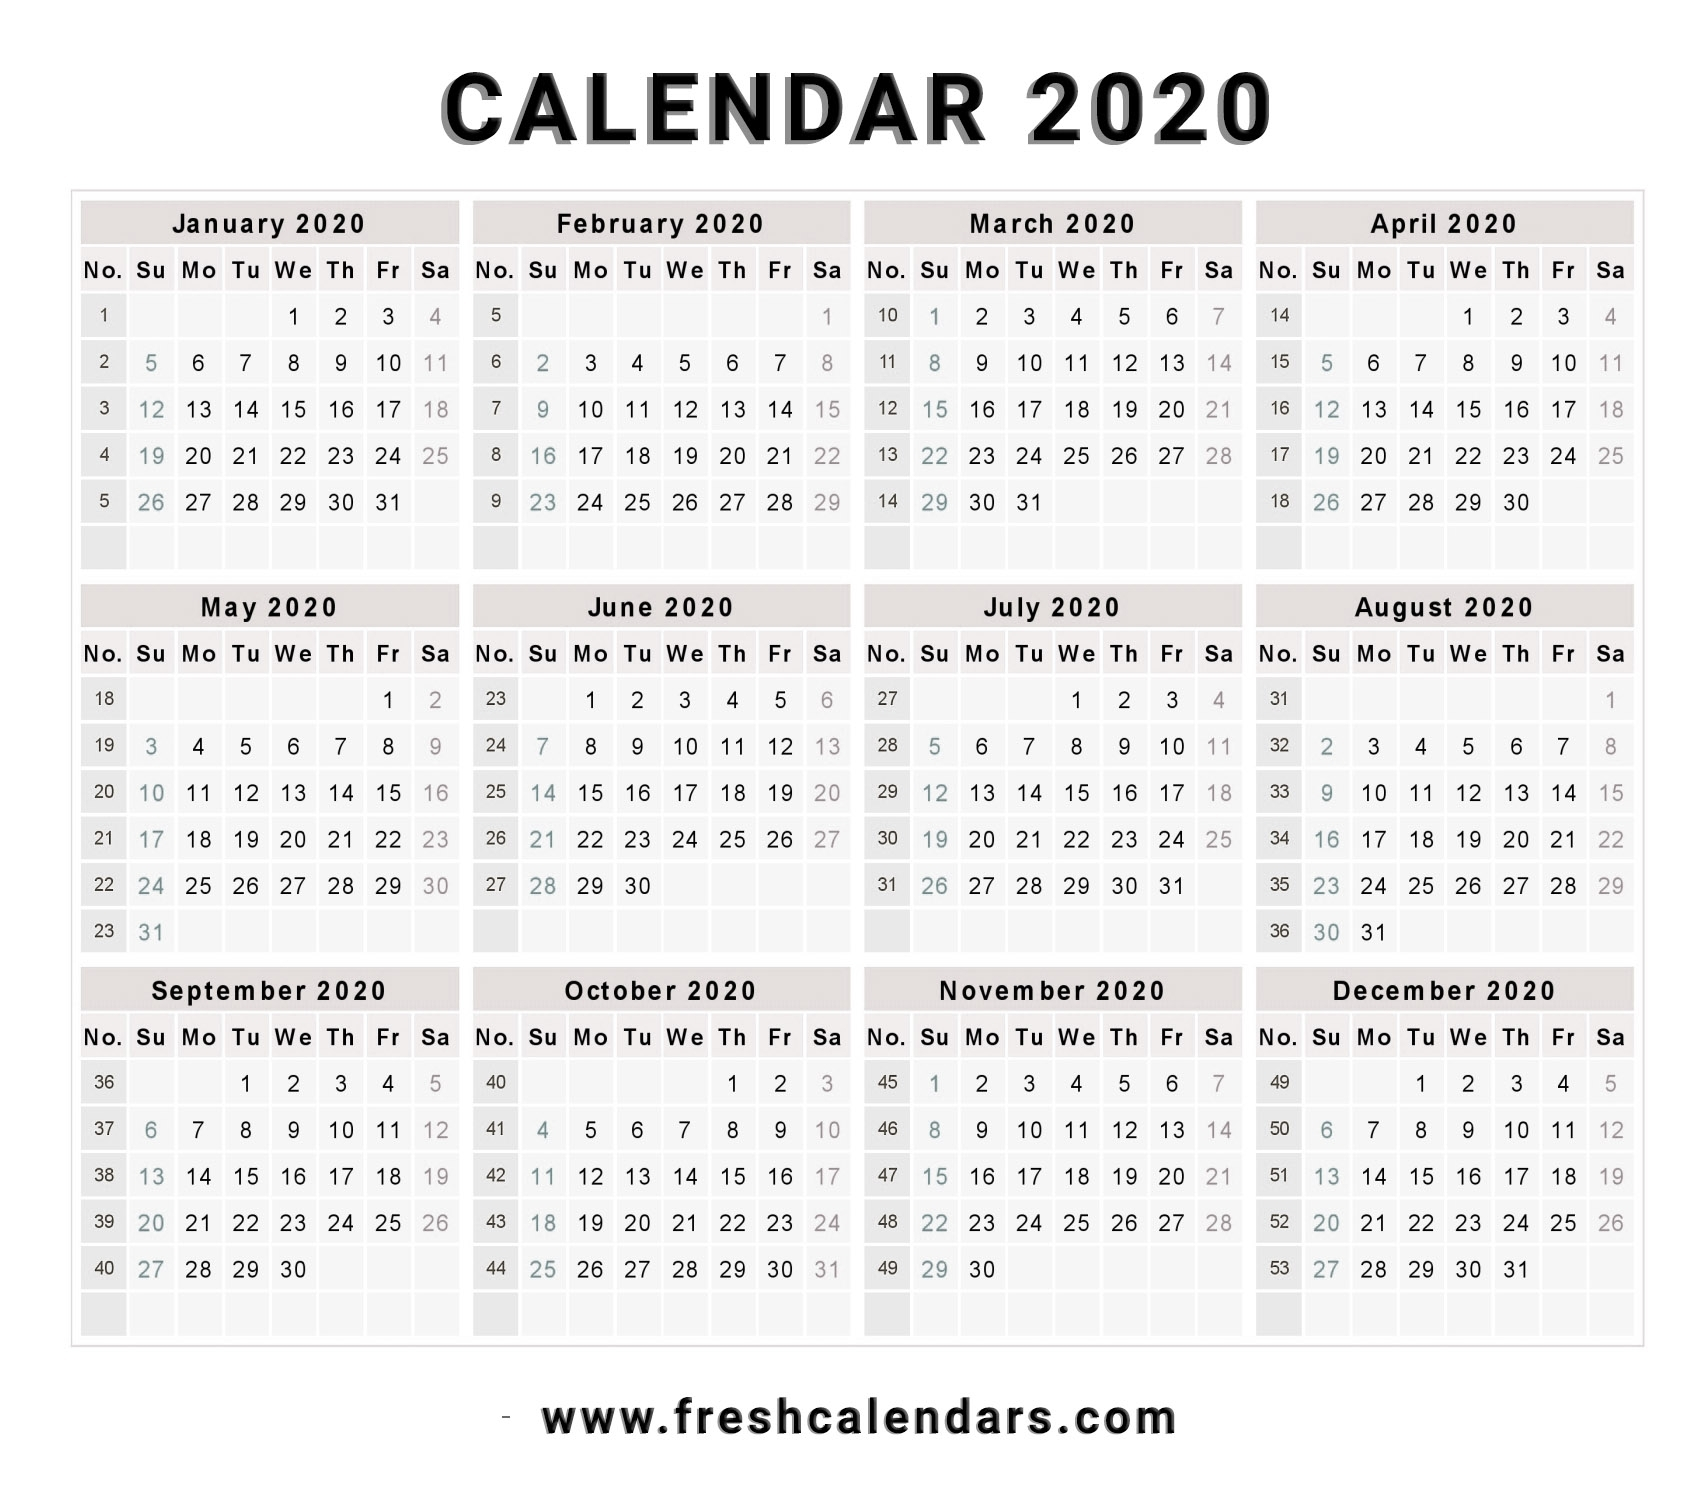 2020 Calendar intended for Large Print 2020 Calendar To Print Free